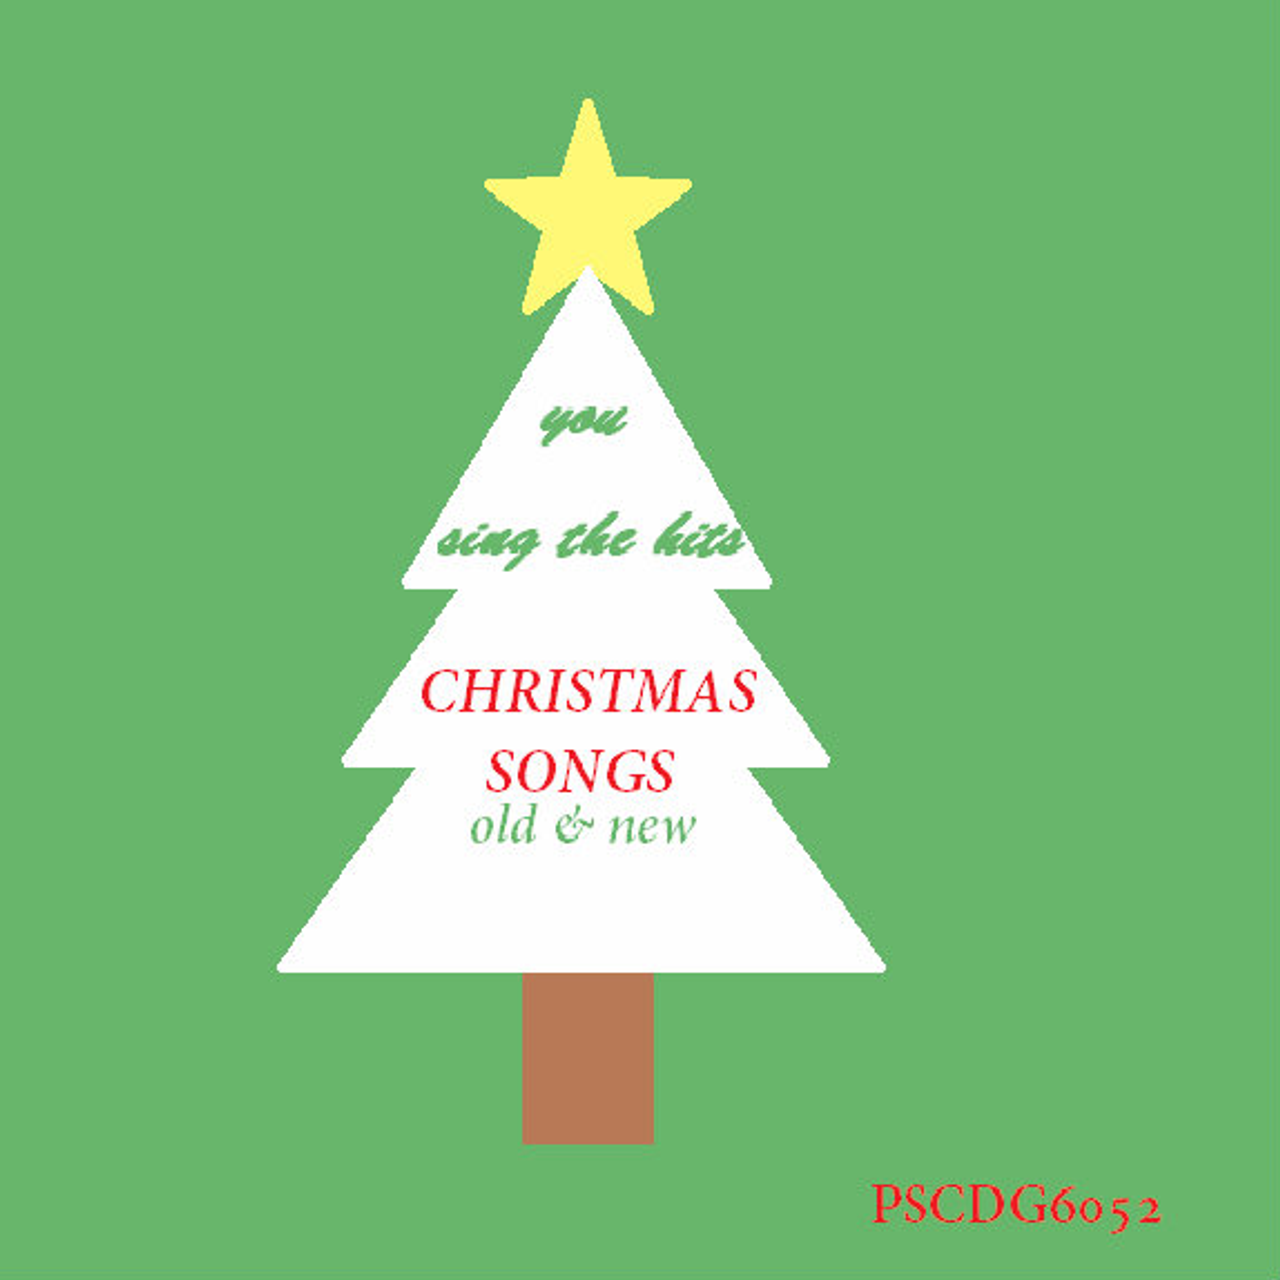 Christmas Songs Old & New (PSCDG-6052 LMT-QTY)